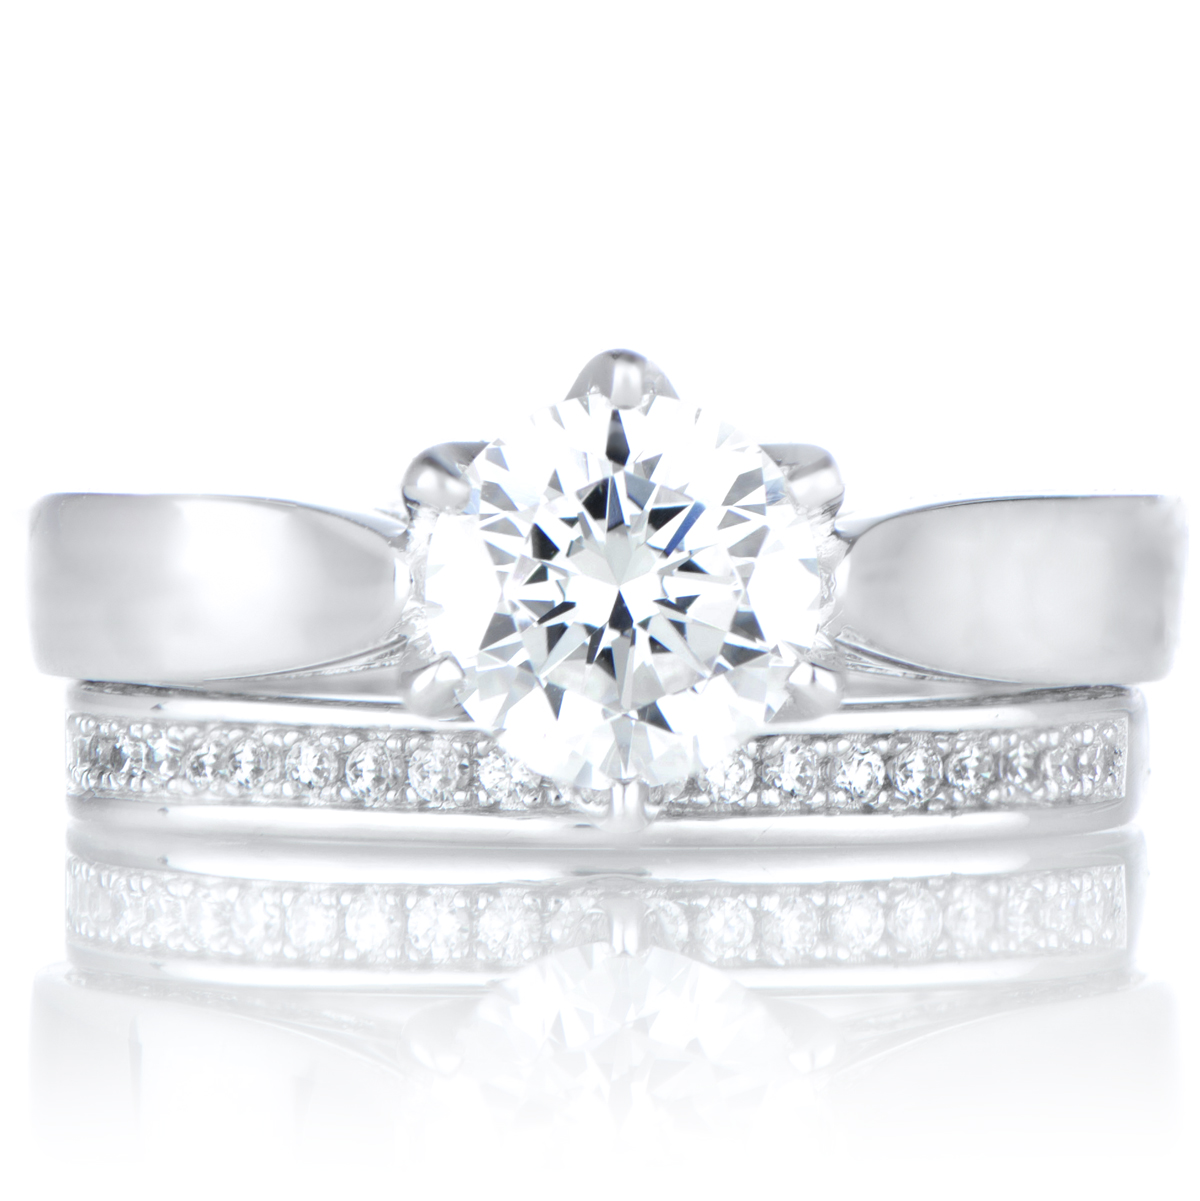 9 WomensThreeStonesCubicZirconiaPrincessCutSterlingSilverEngagementWeddingRingSet silver wedding ring sets Set Women s Three Stones Cubic Zirconia Princess Cut Sterling Silver Engagement Wedding Ring